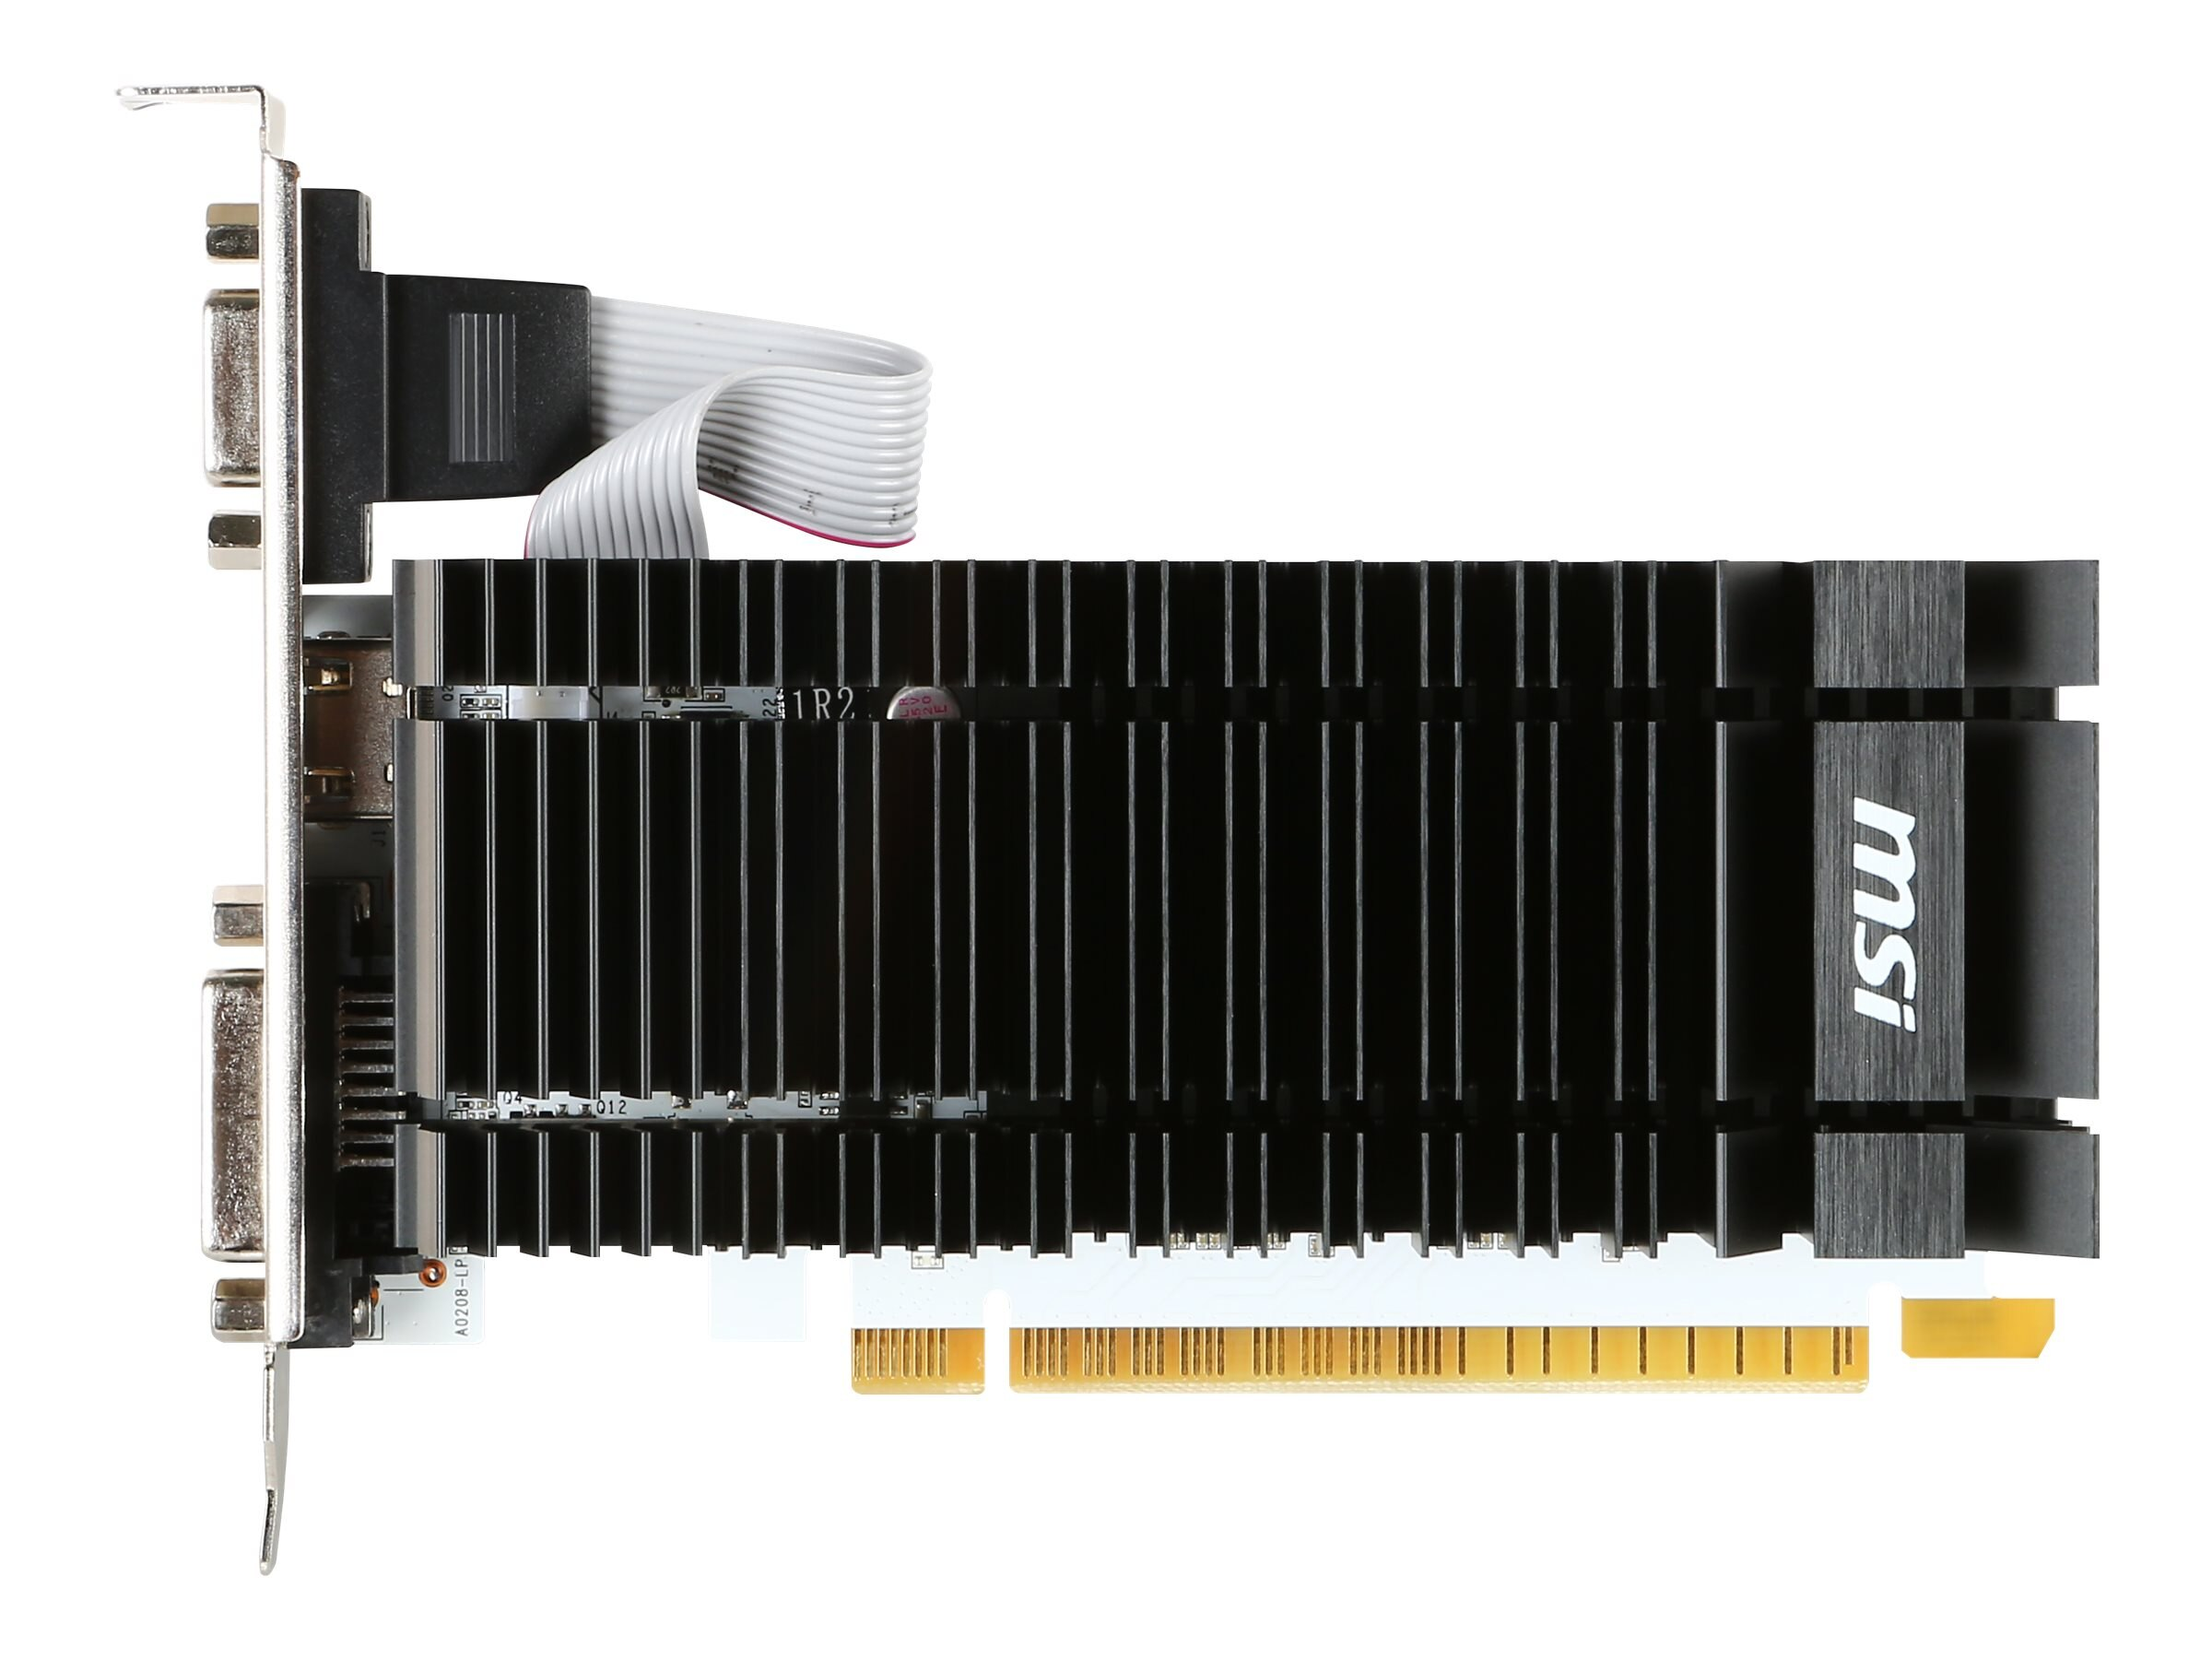 Microstar GeForce GT 730 PCIe 2.0 Graphics Card, 2GB DDR3, N730K-2GD3H/LP